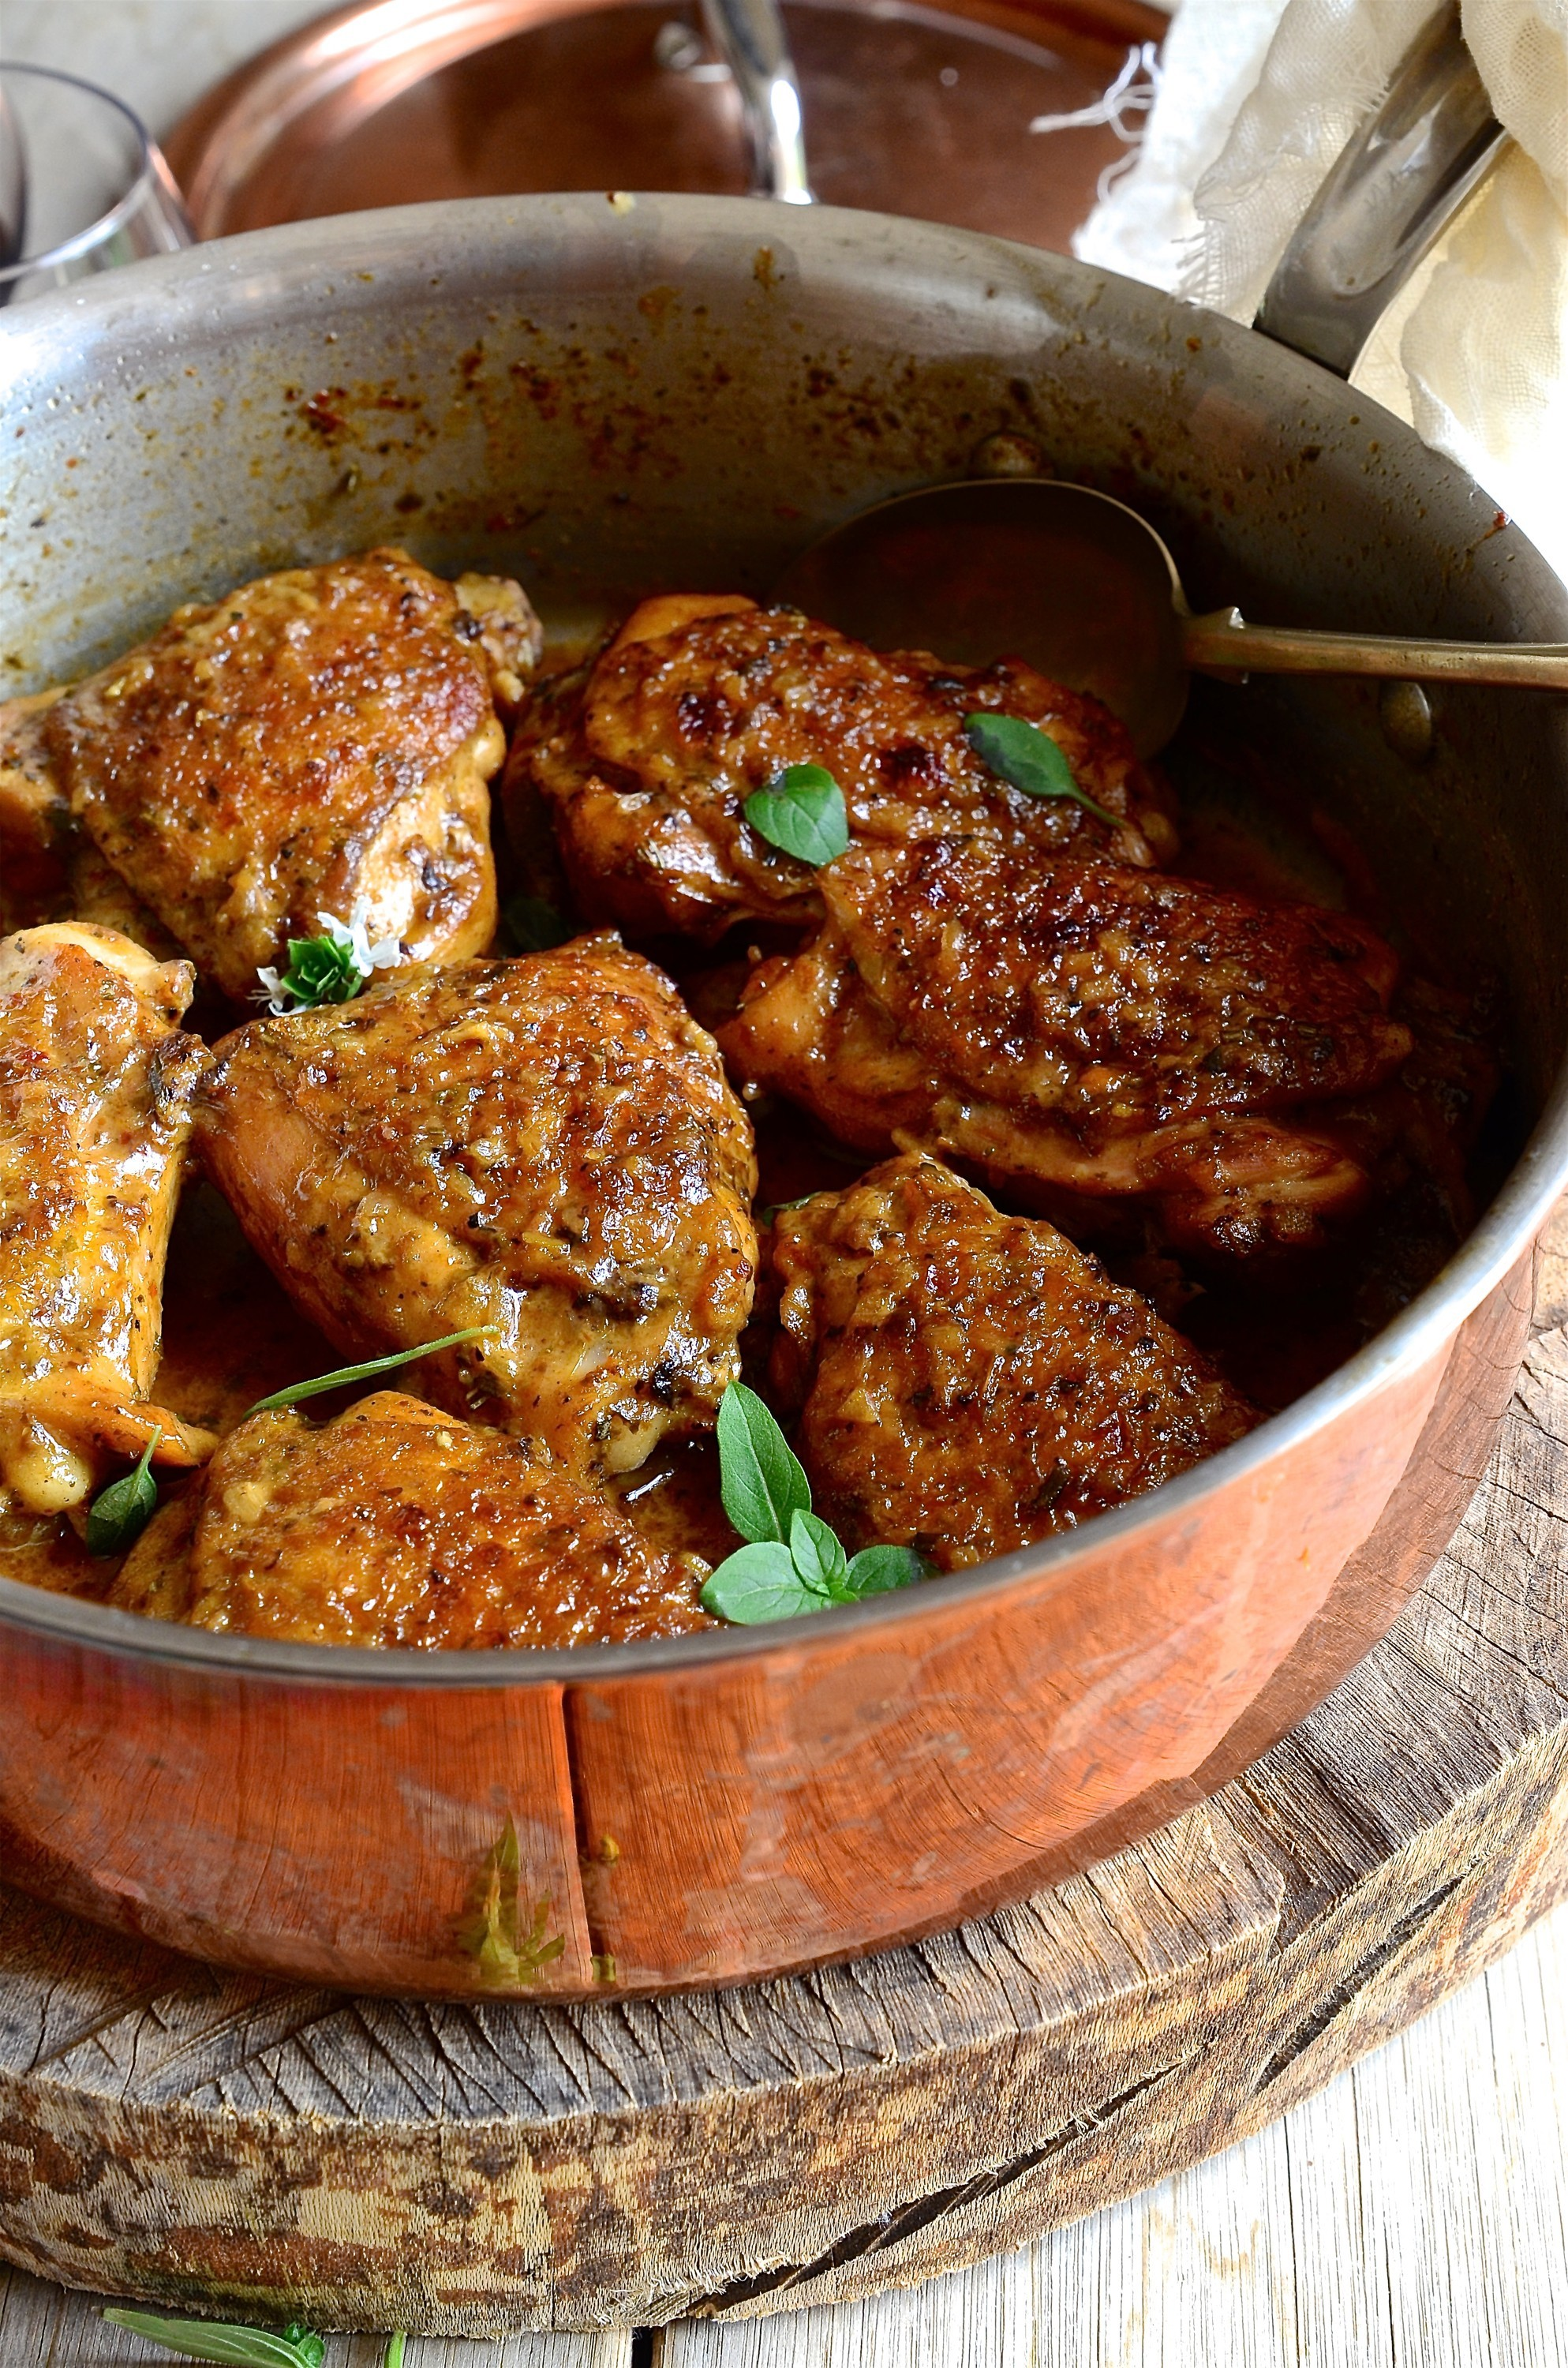 Chicken Archives | Page 4 of 5 | Bibby's Kitchen @ 36 | A food blog sharing recipes, stories and travel | Page 4